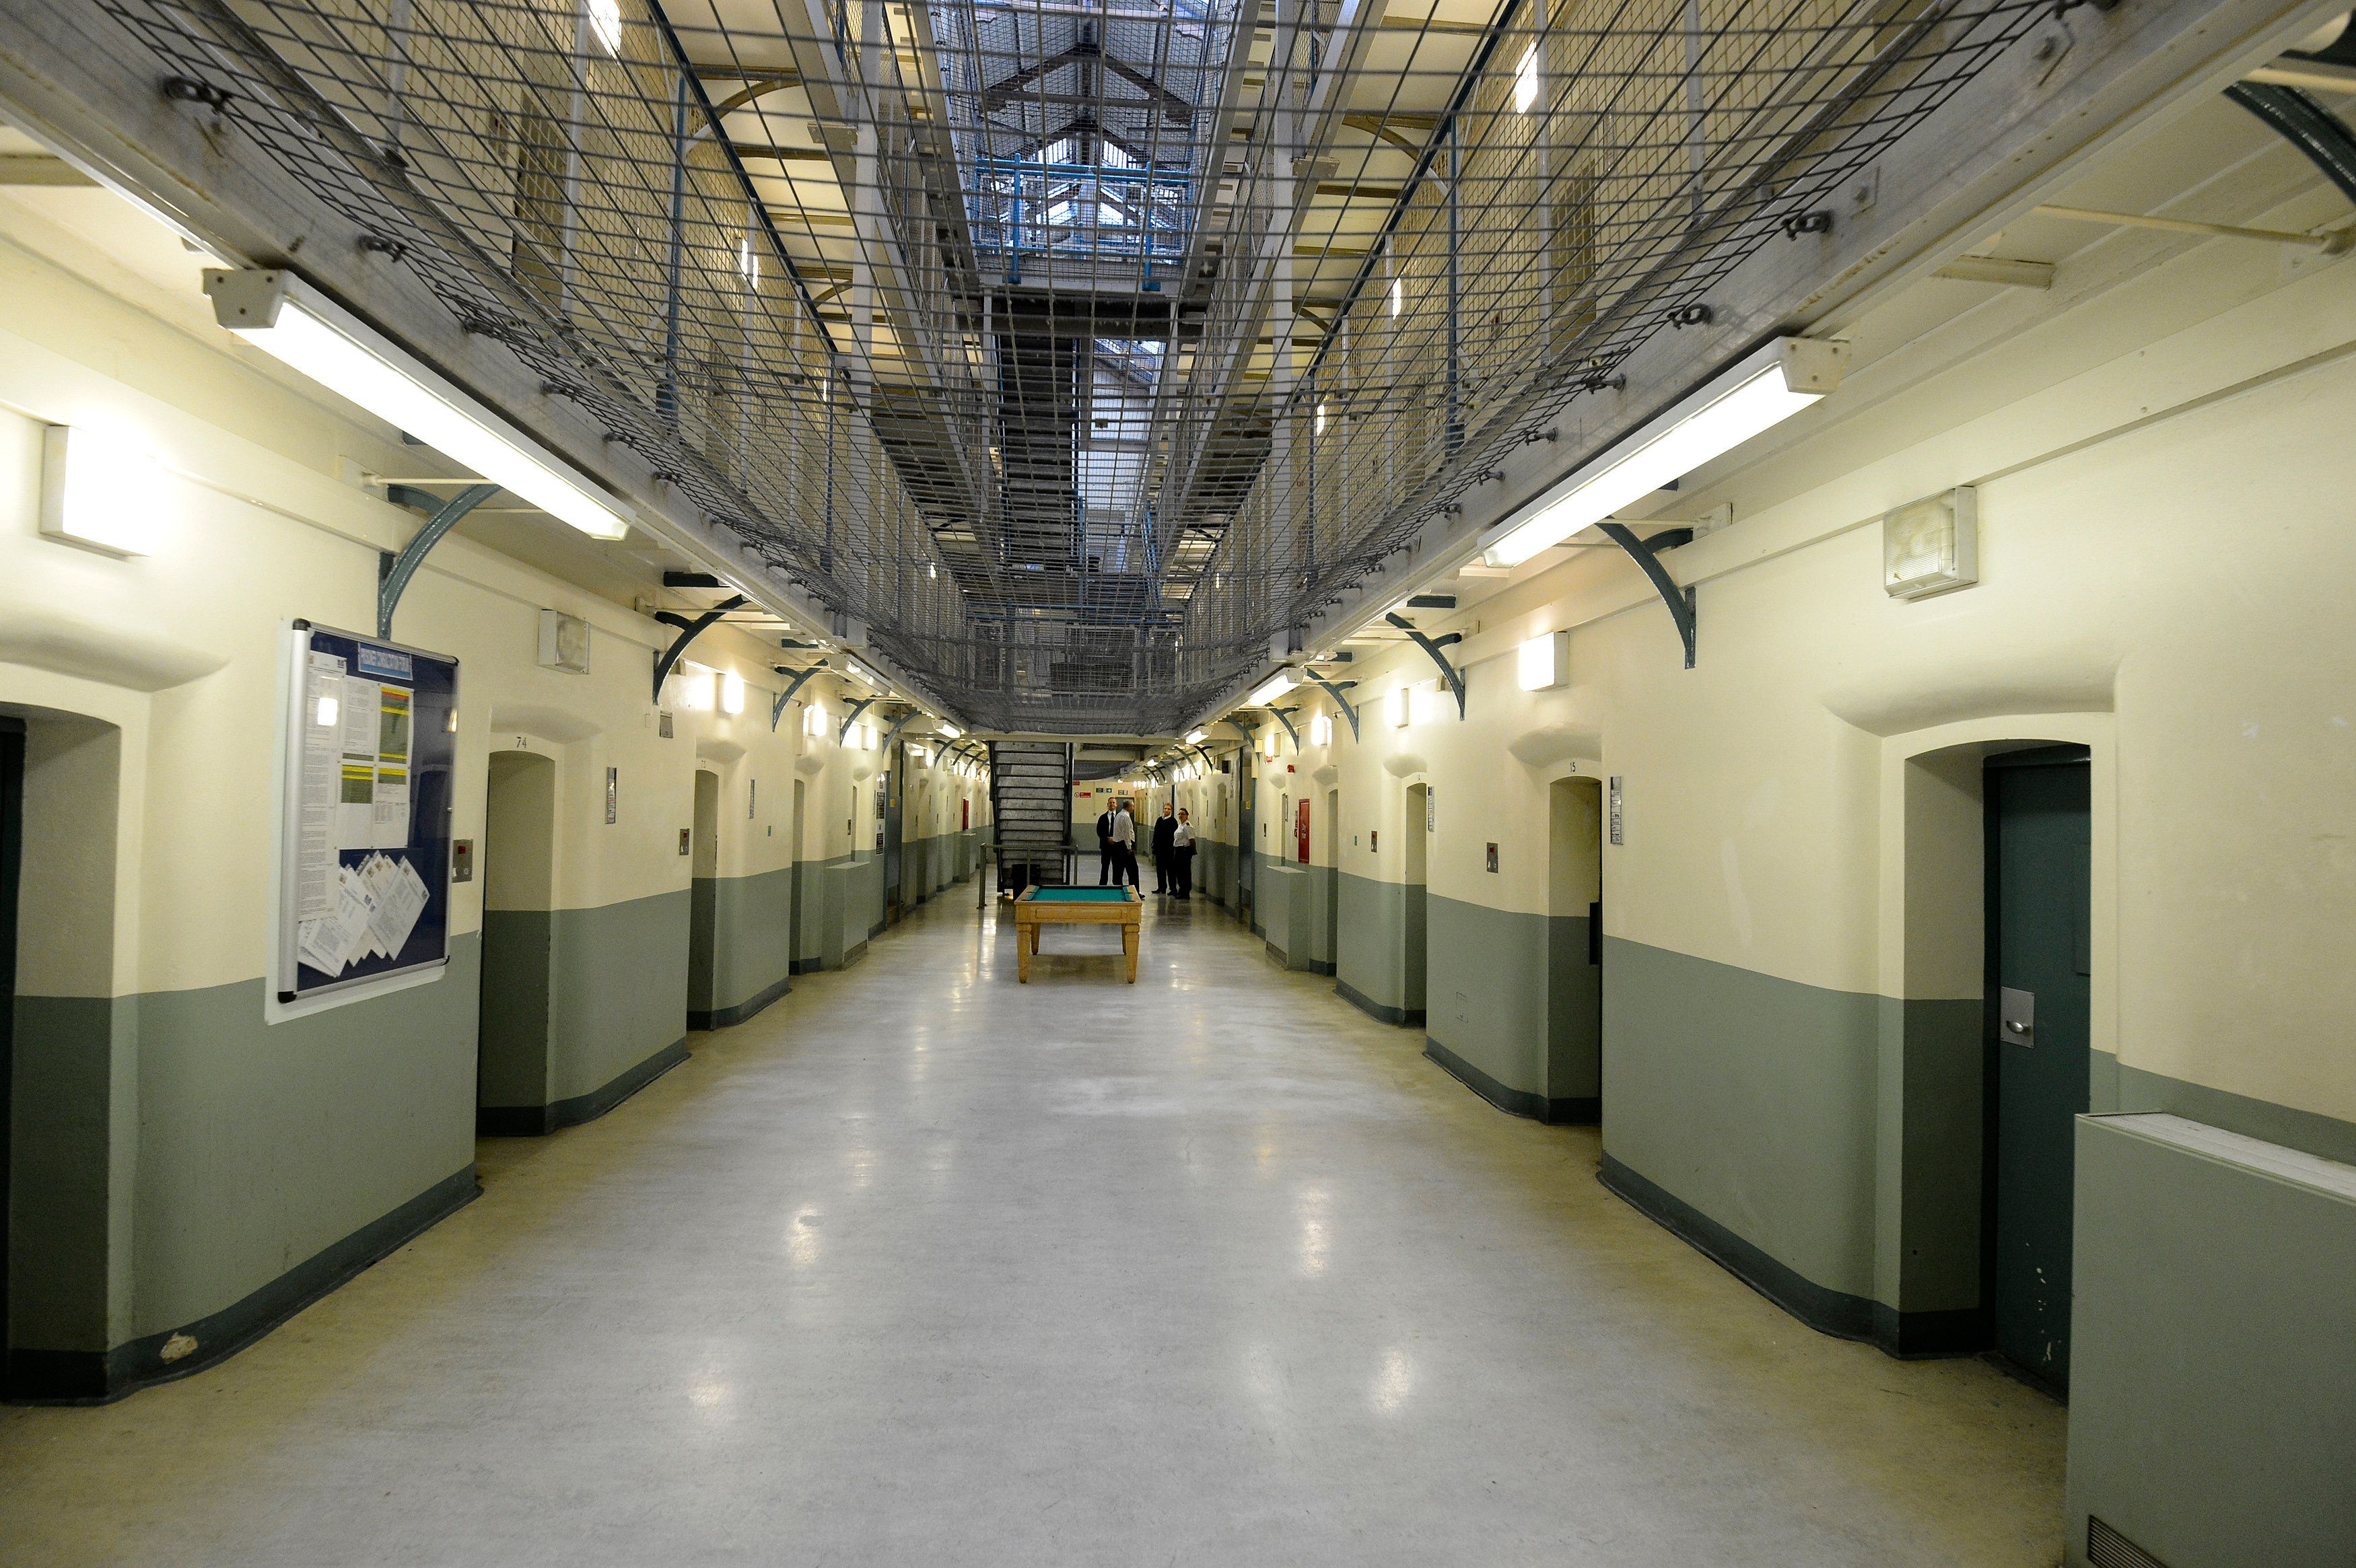 Prison Staff Smuggling Banned Items Into Jails Soars 58% Since